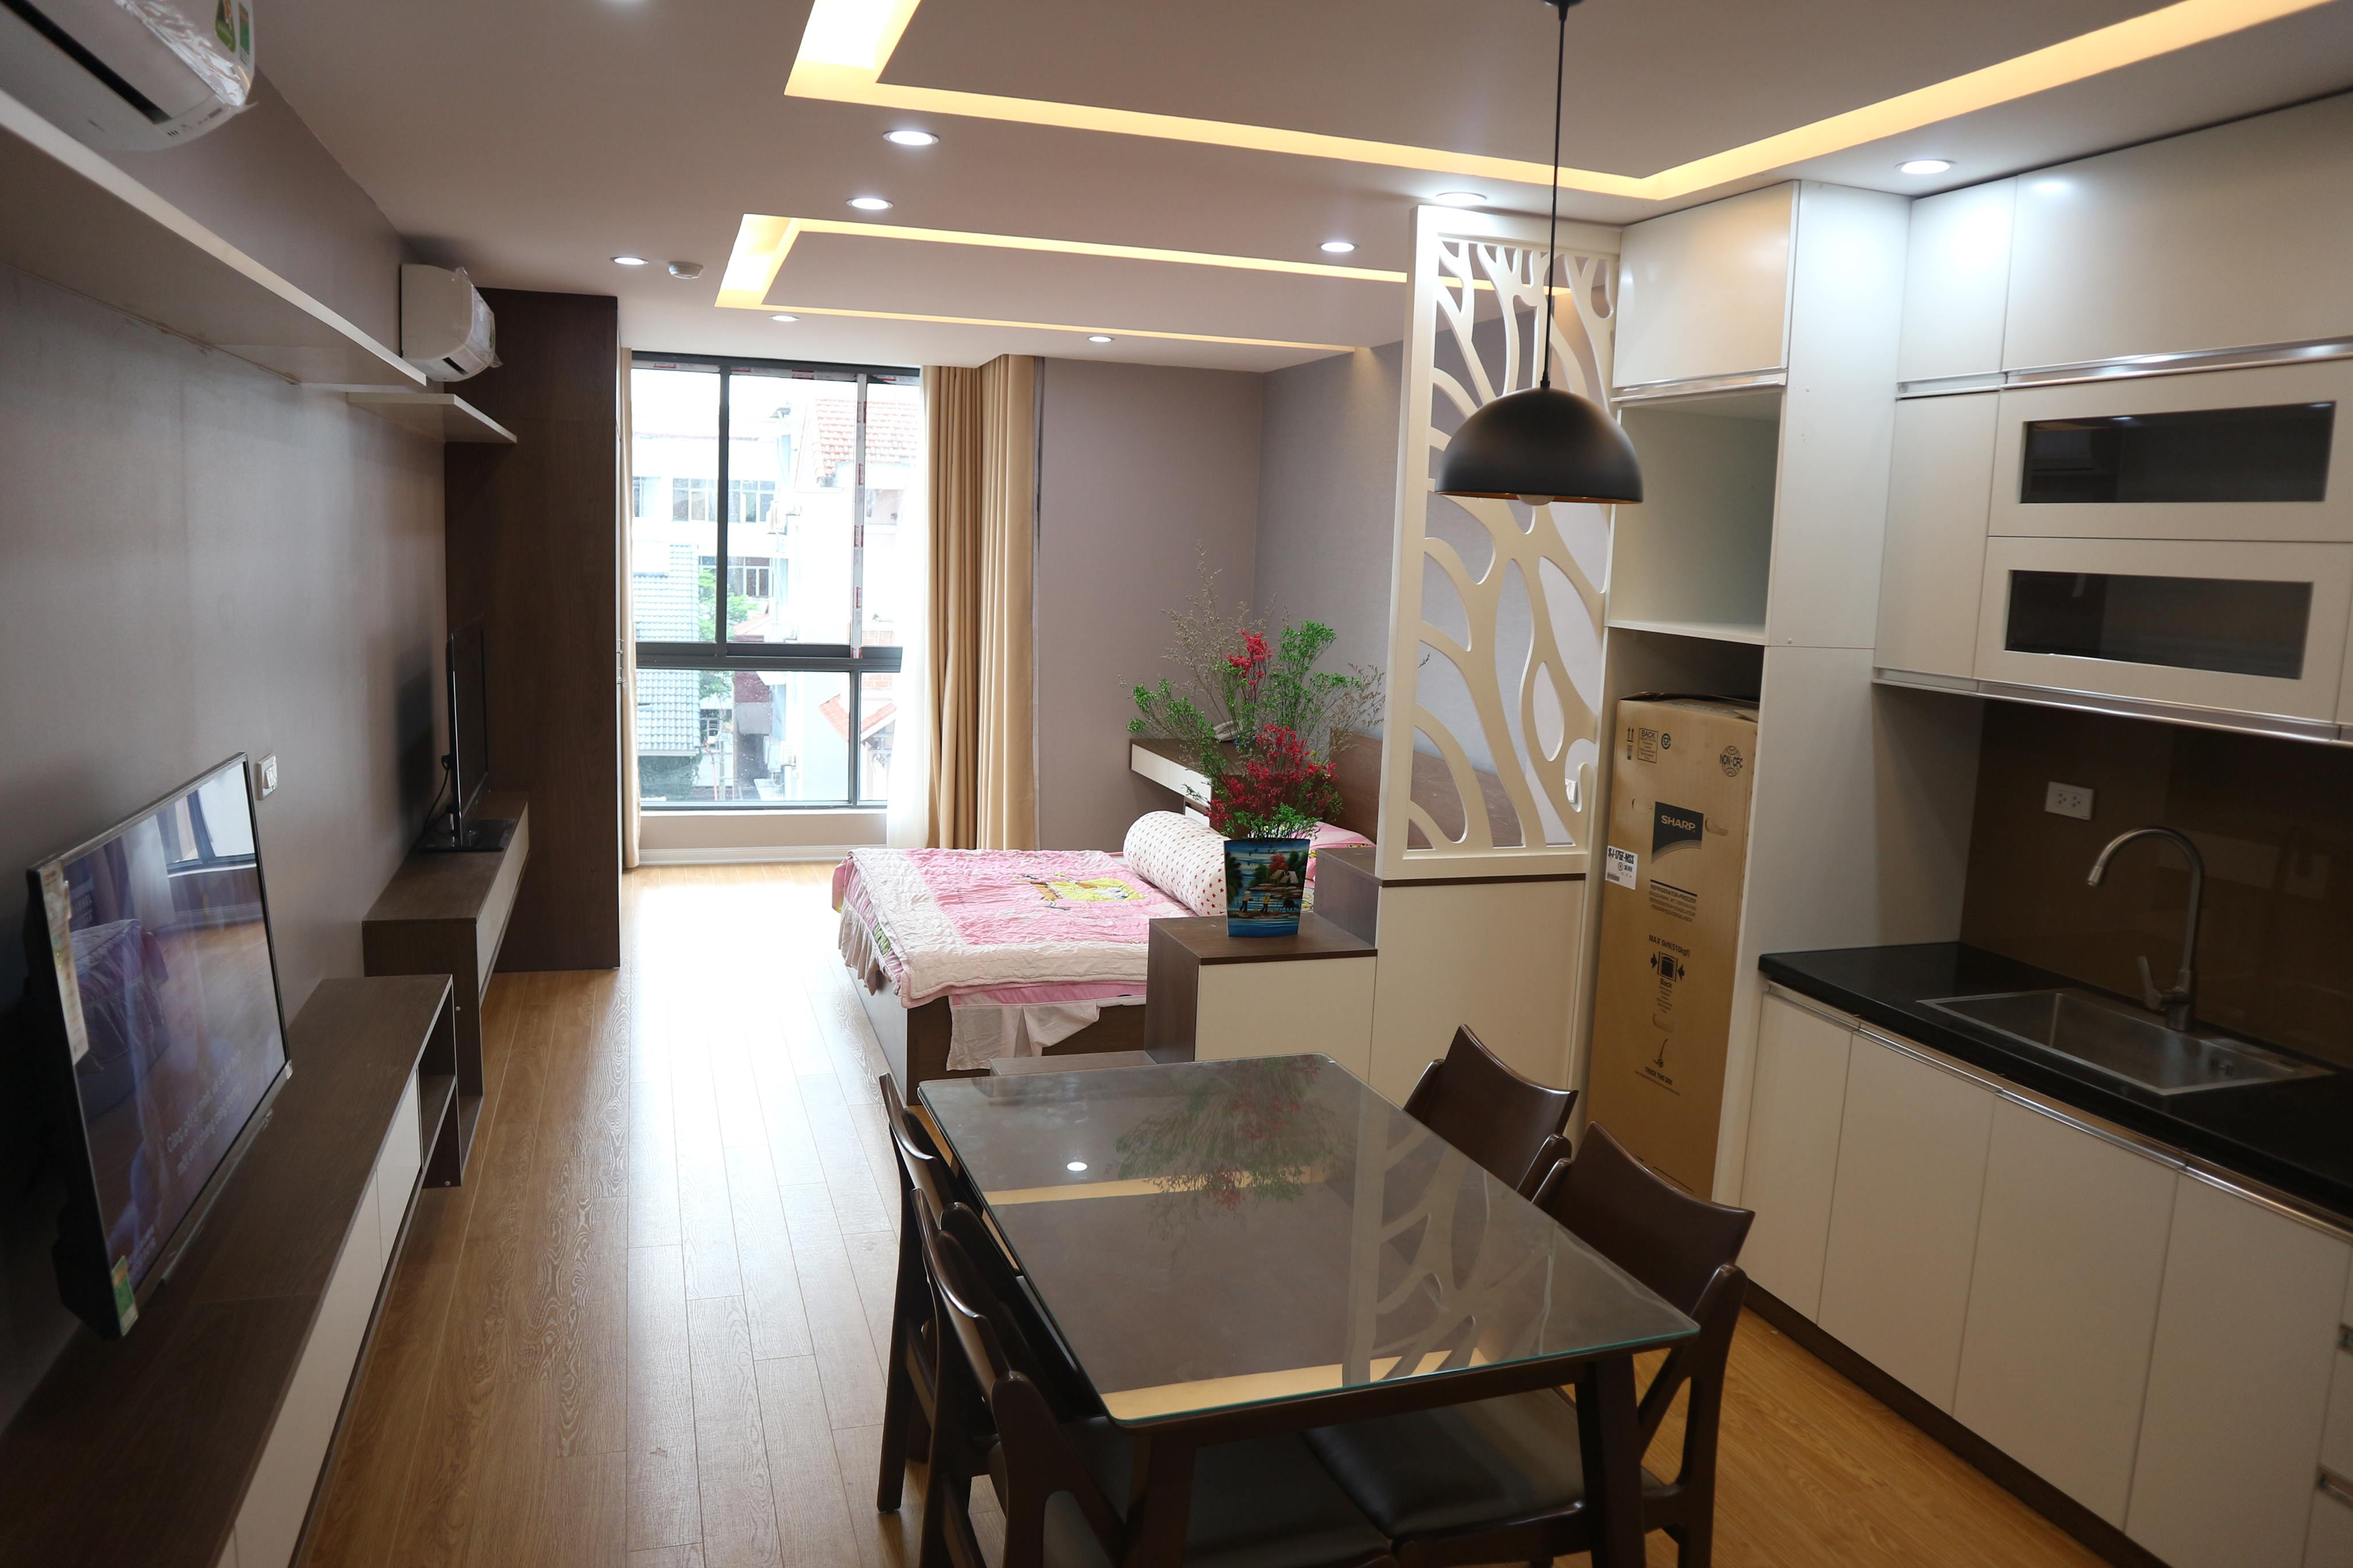 Studio apartment for rent near Lotte, Linh Lang street